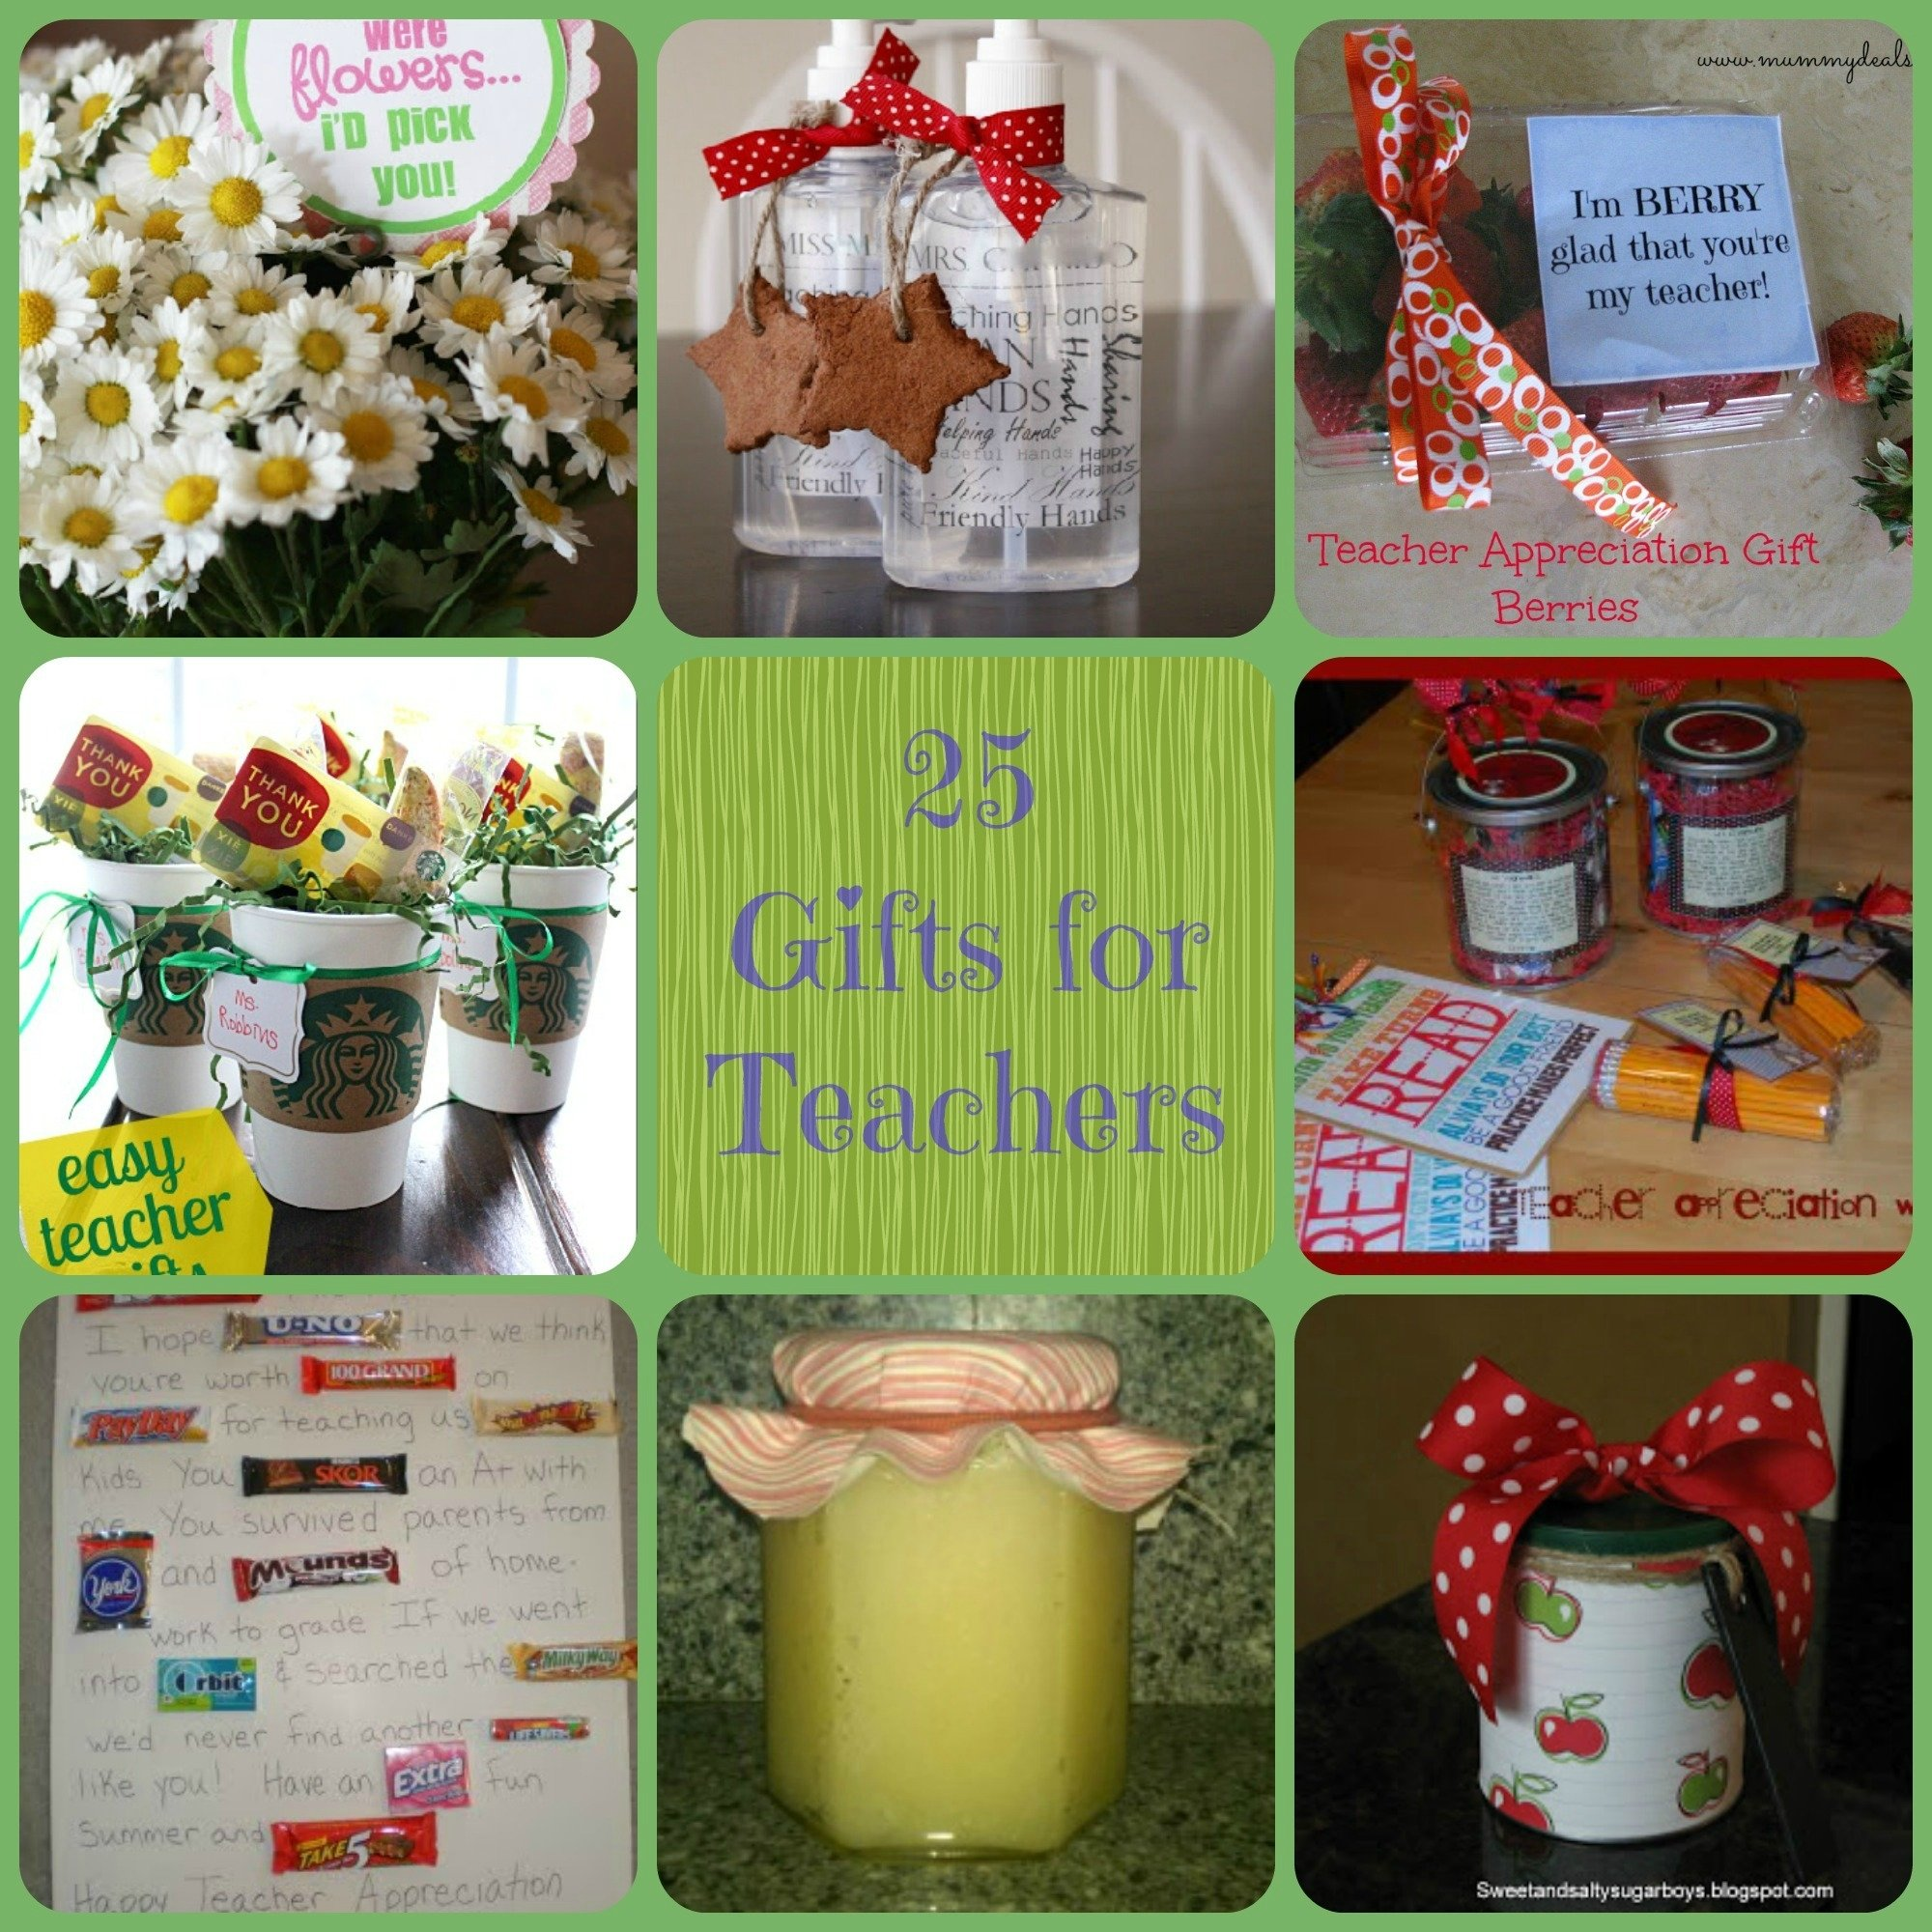 25 teacher gift ideas - farmer's wife rambles